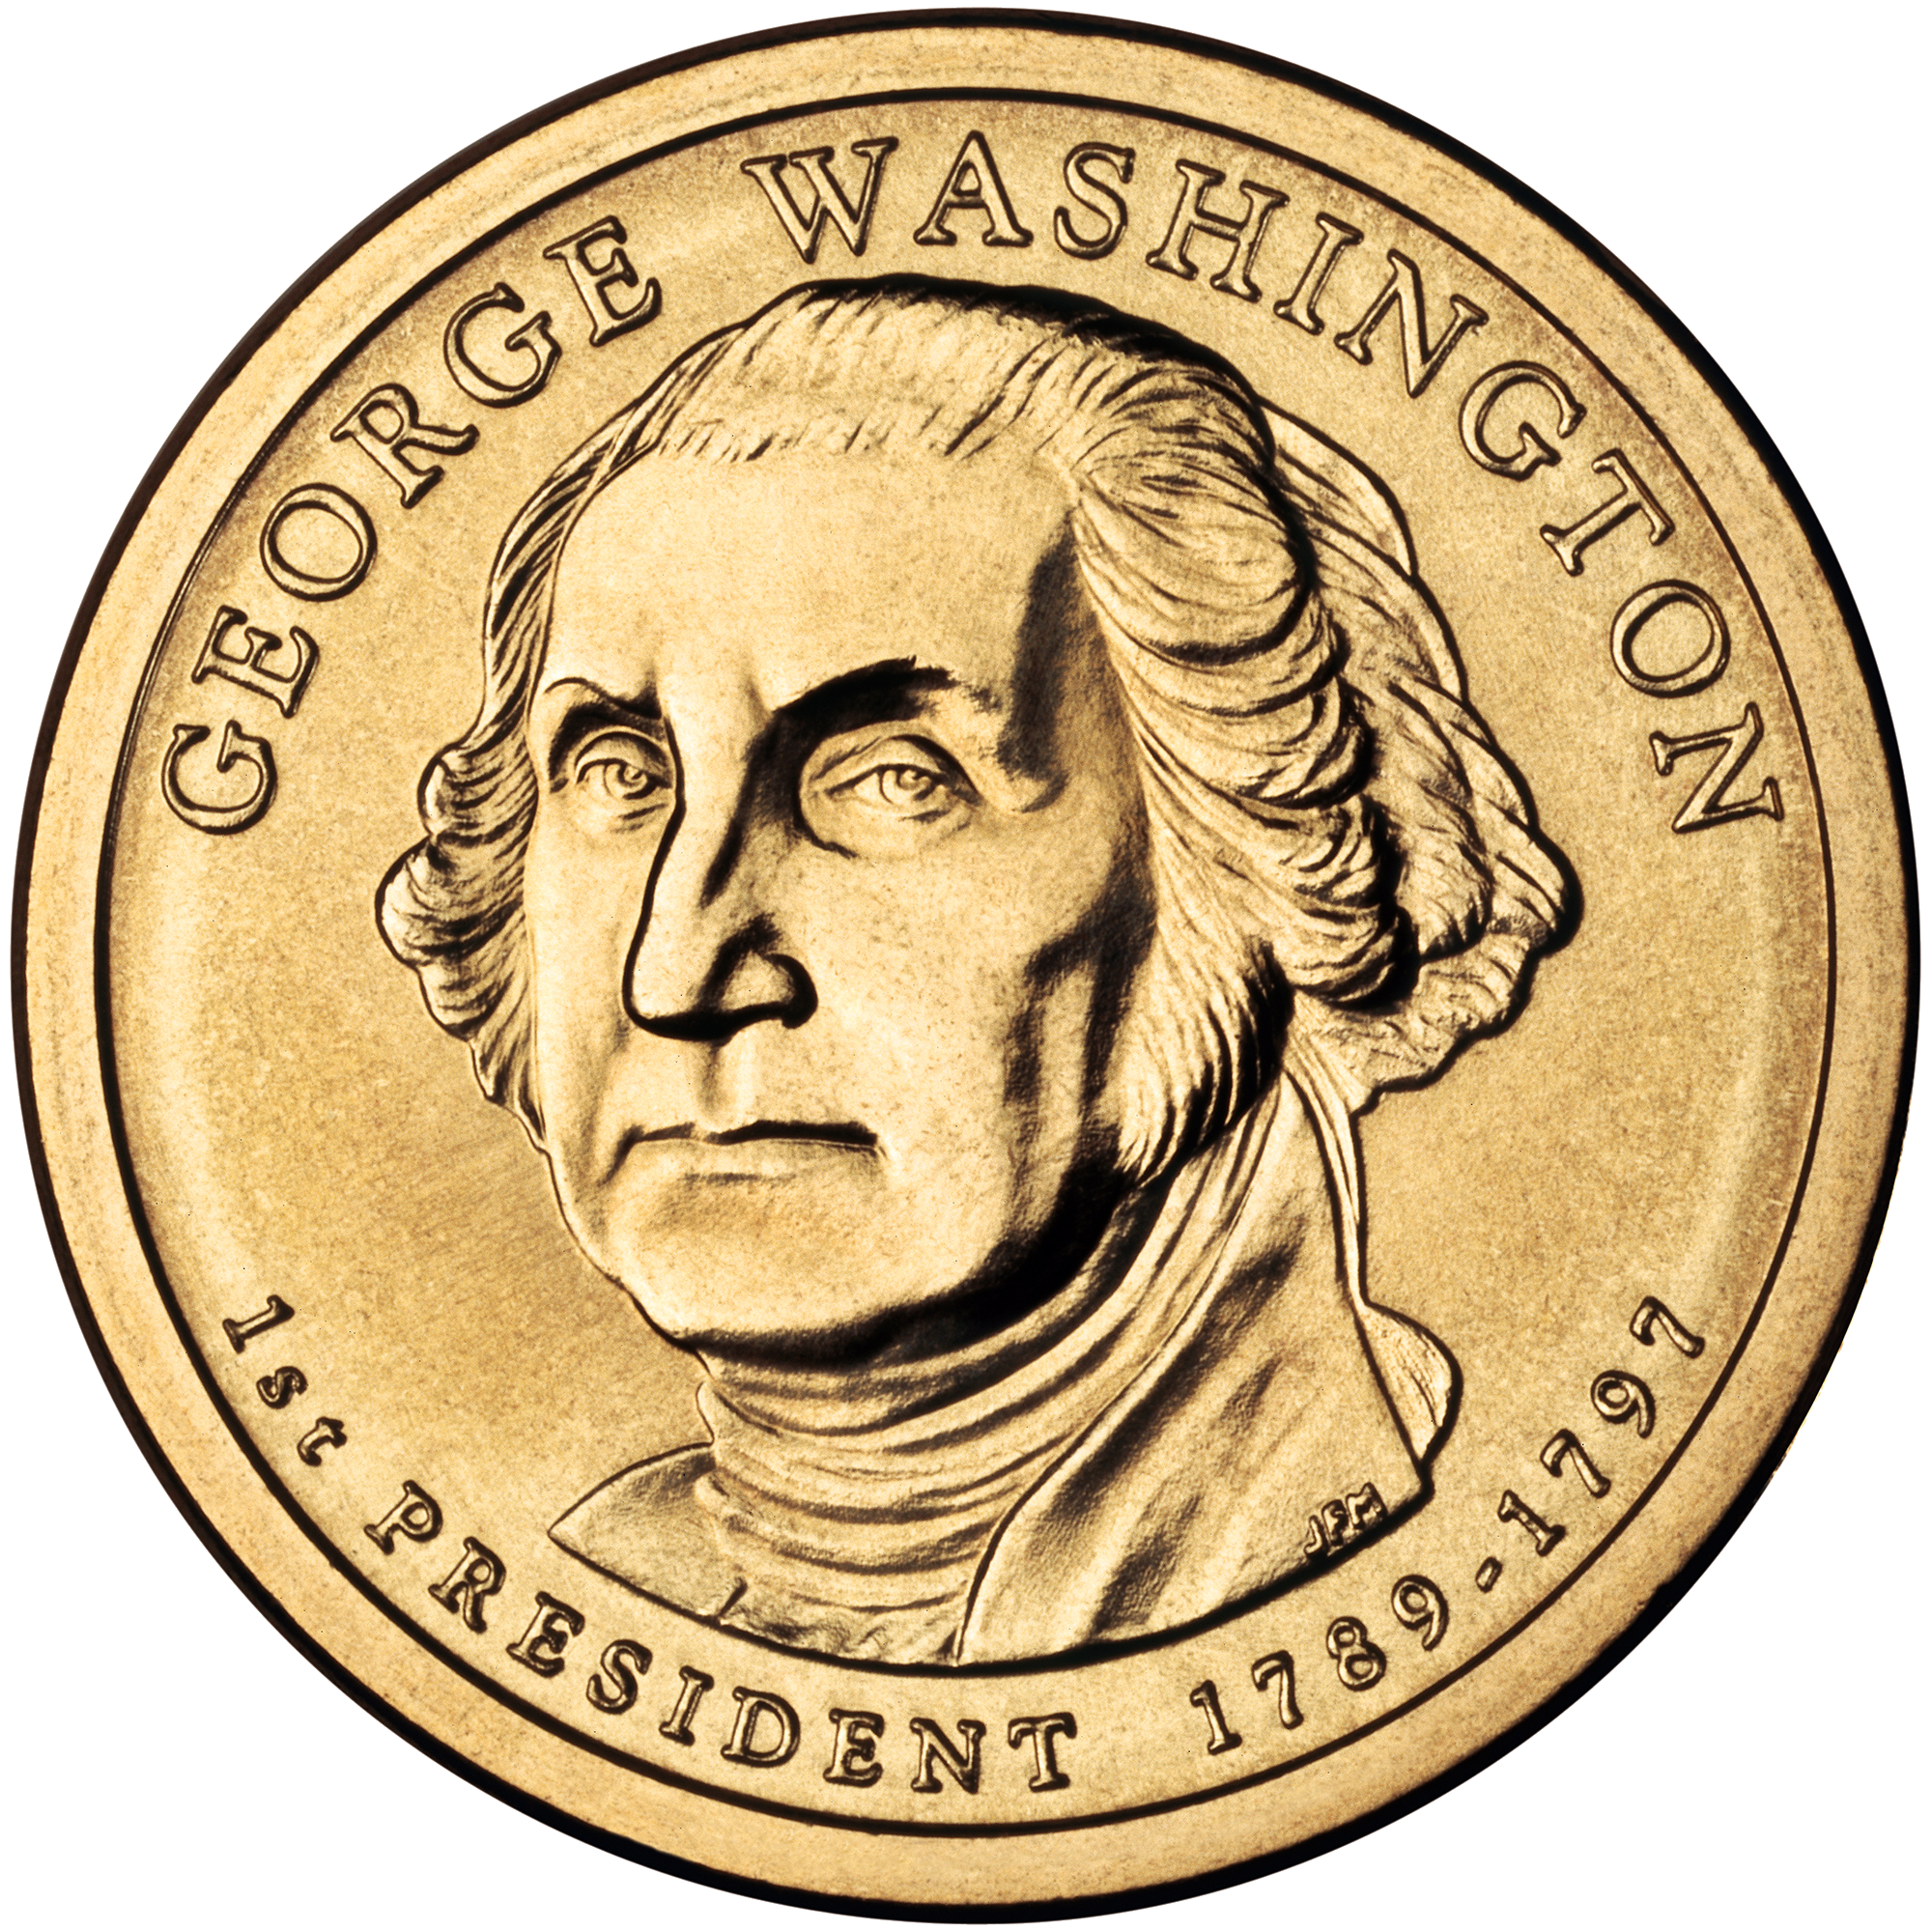 File:George Washington Presidential $1 Coin obverse.png - Wikipedia ...